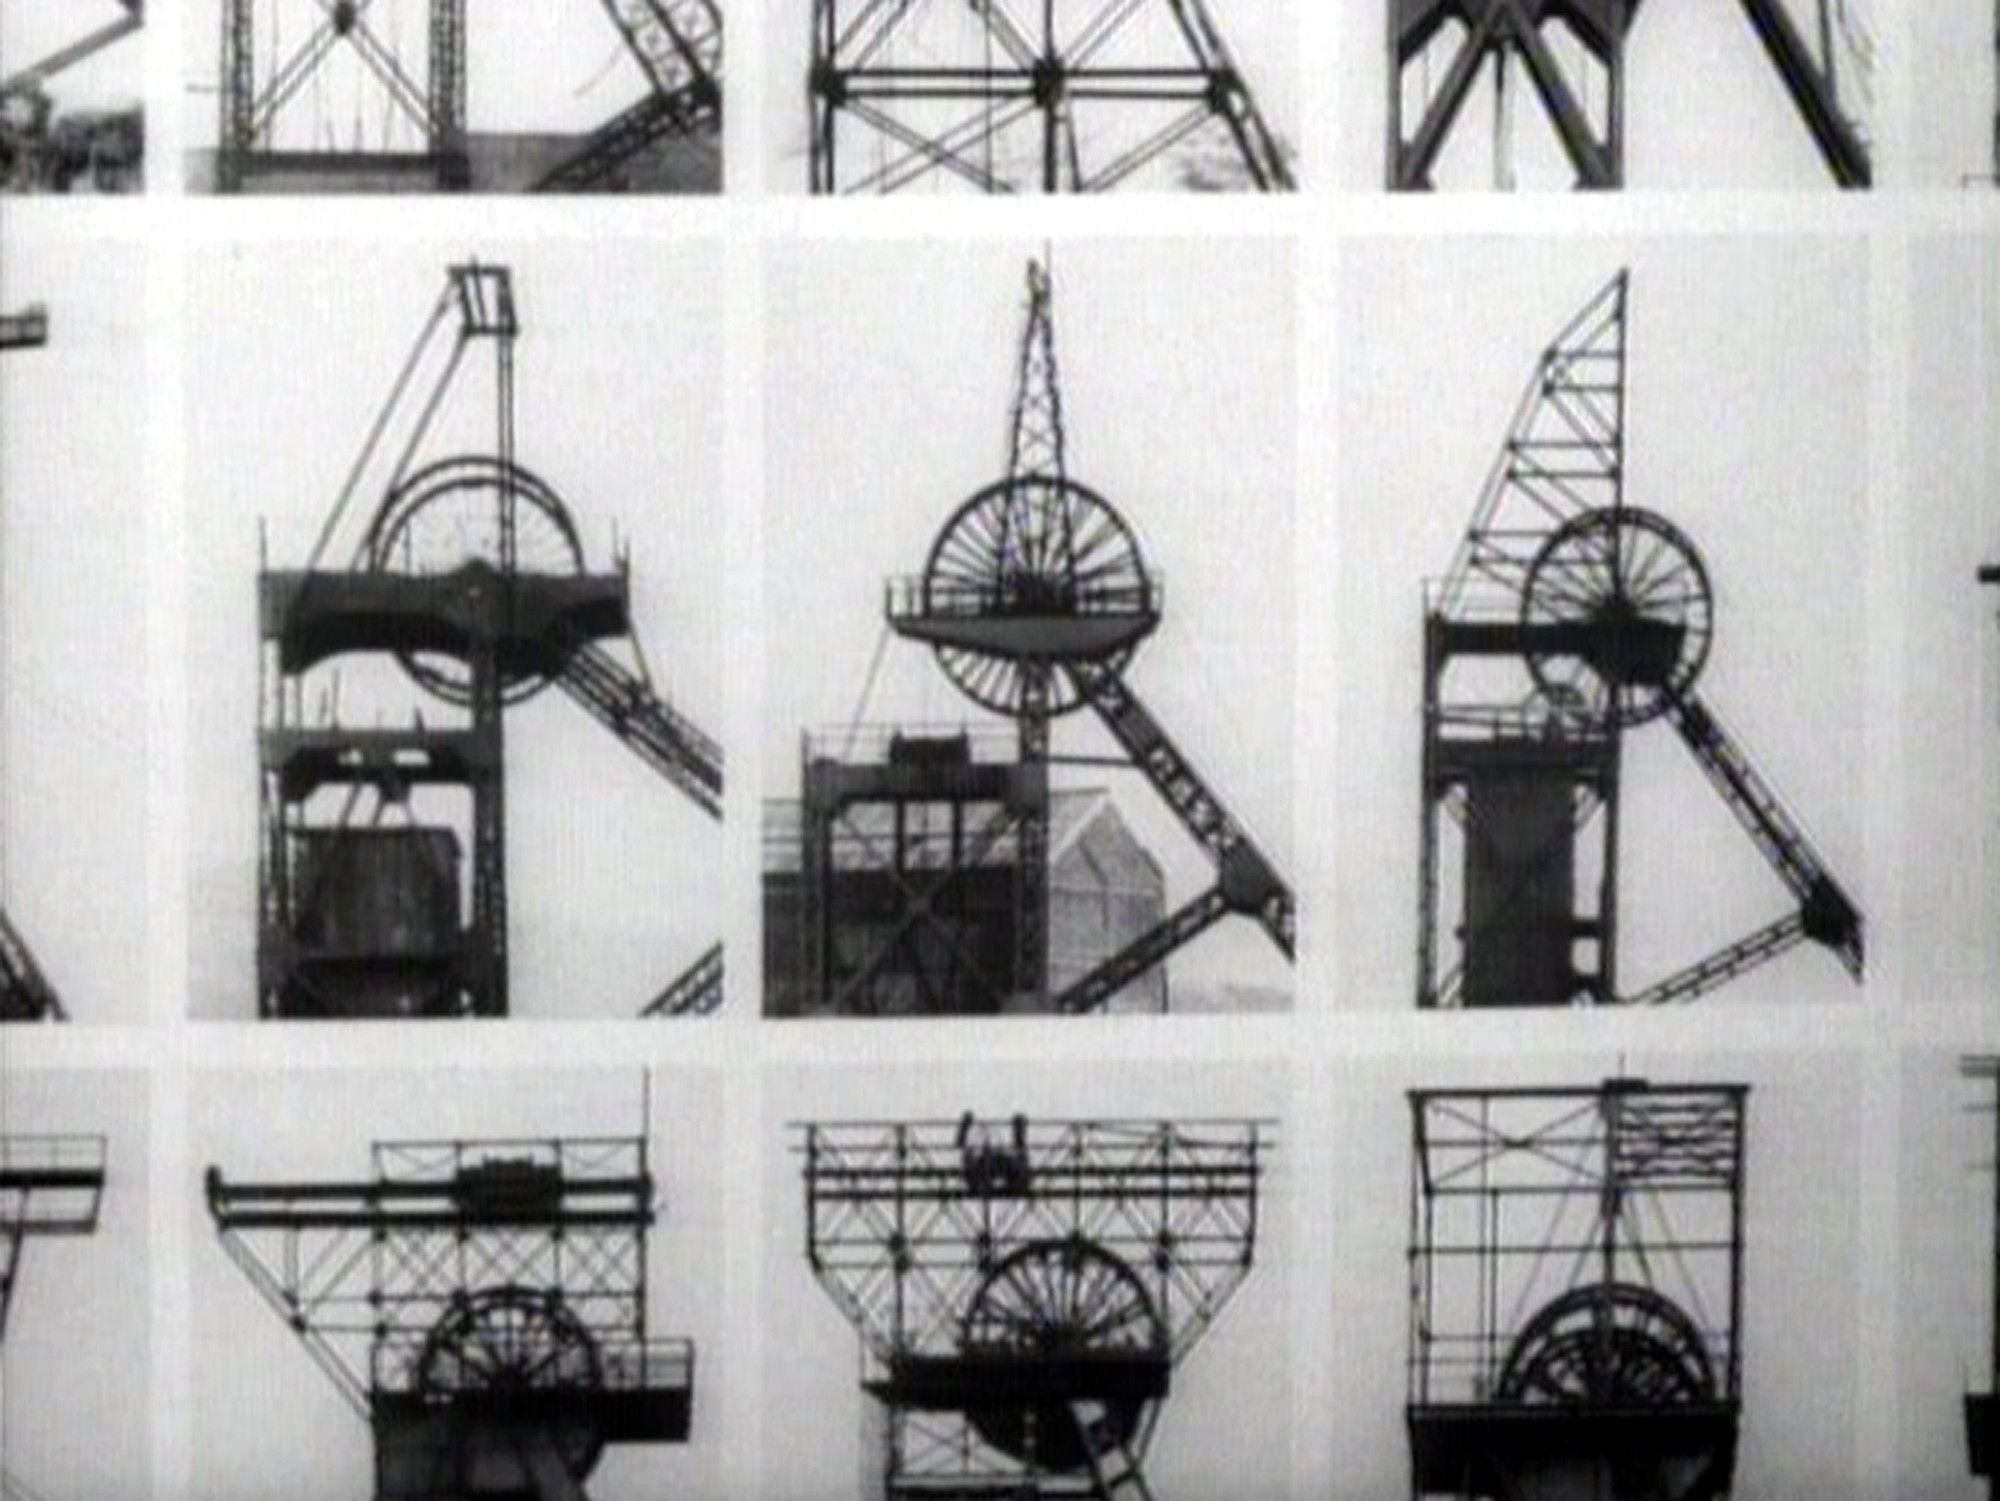 Harun Farocki. Industry and Photography. 1979